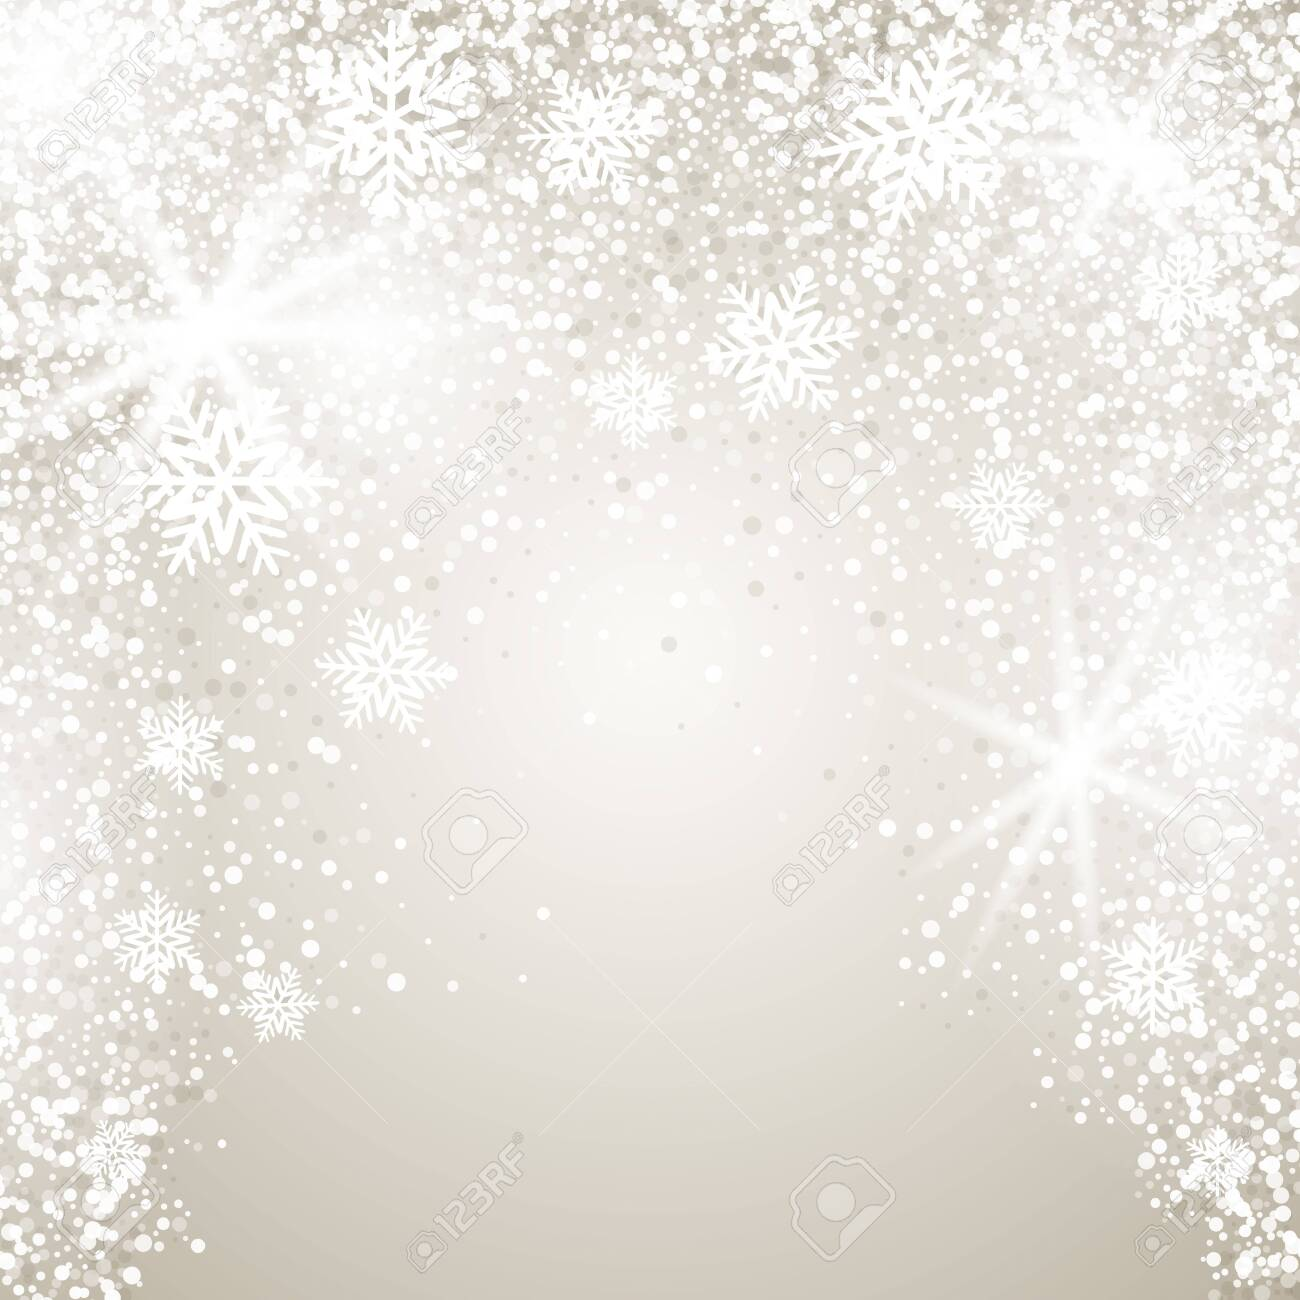 Elegant Christmas background with snowflakes and place for text. Vector Illustration. - 149625936